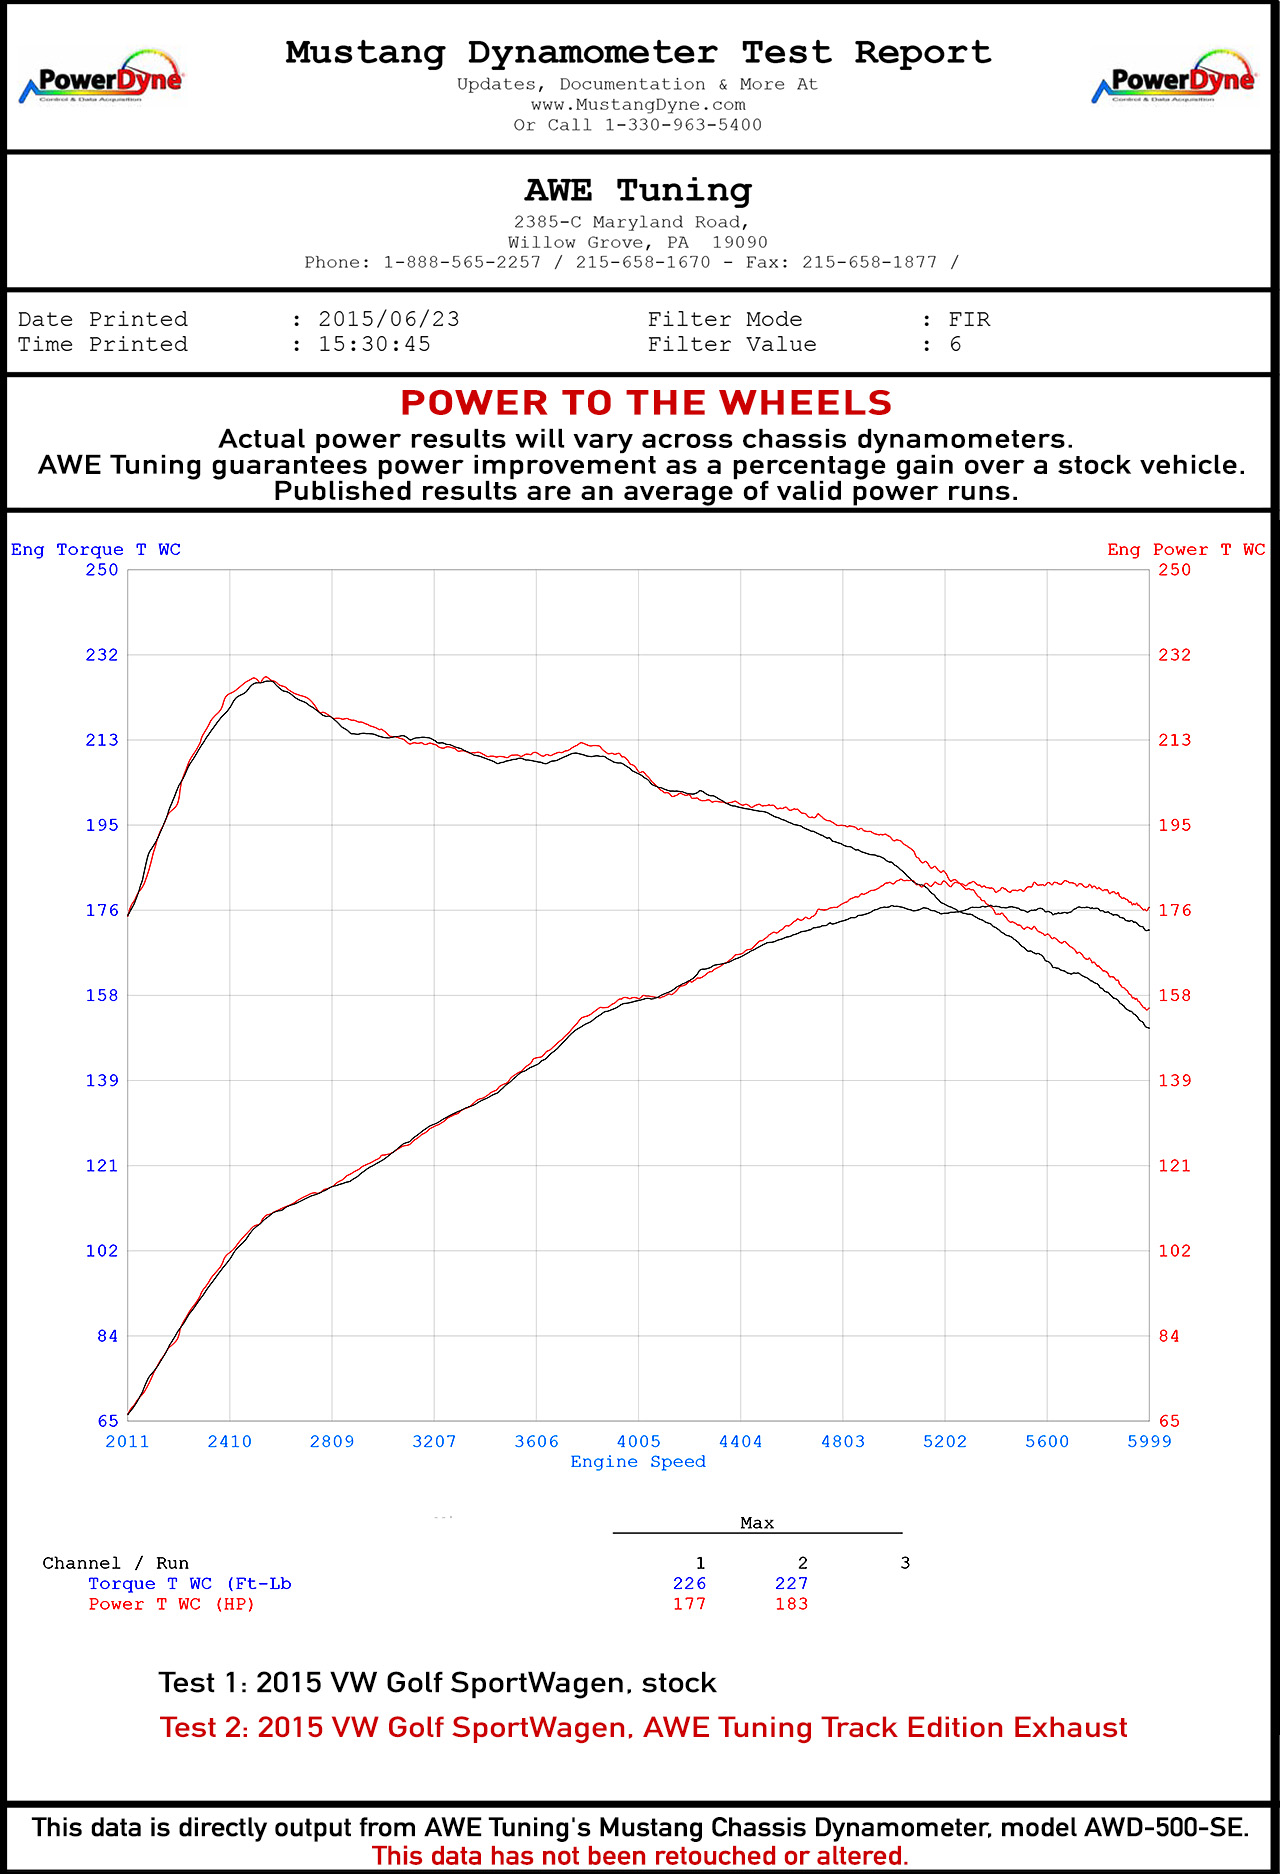 Wheel Horsepower Gains for the AWE Tuning VW MK7 Golf SportWagen Exhaust System